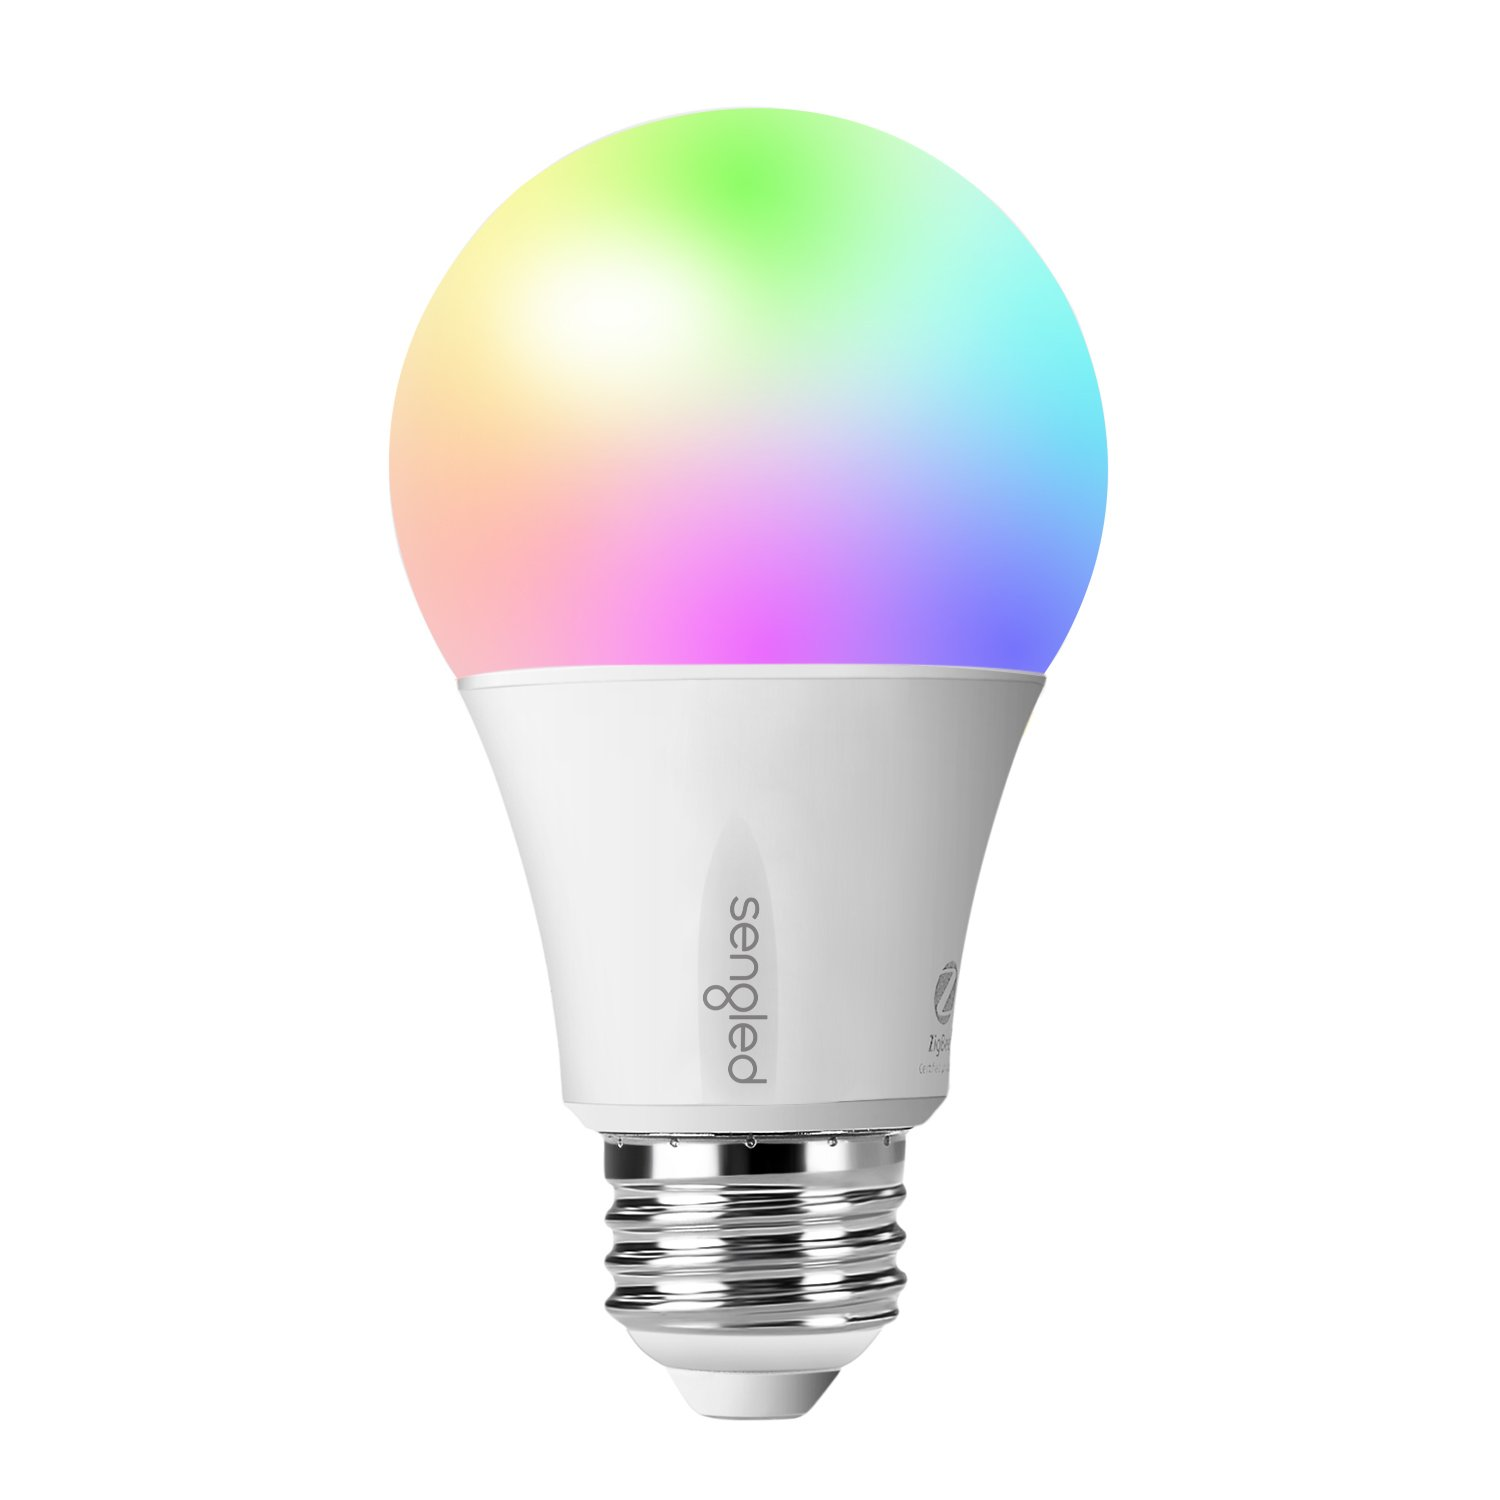 Sengled Element Color Plus A19 Smart LED Light Bulb (Hub Required), RGBW 16 Million Colors and Tunable White 2000-6500K Dimmable, Works with Alexa/Echo Plus/SmartThings / Google Assistant